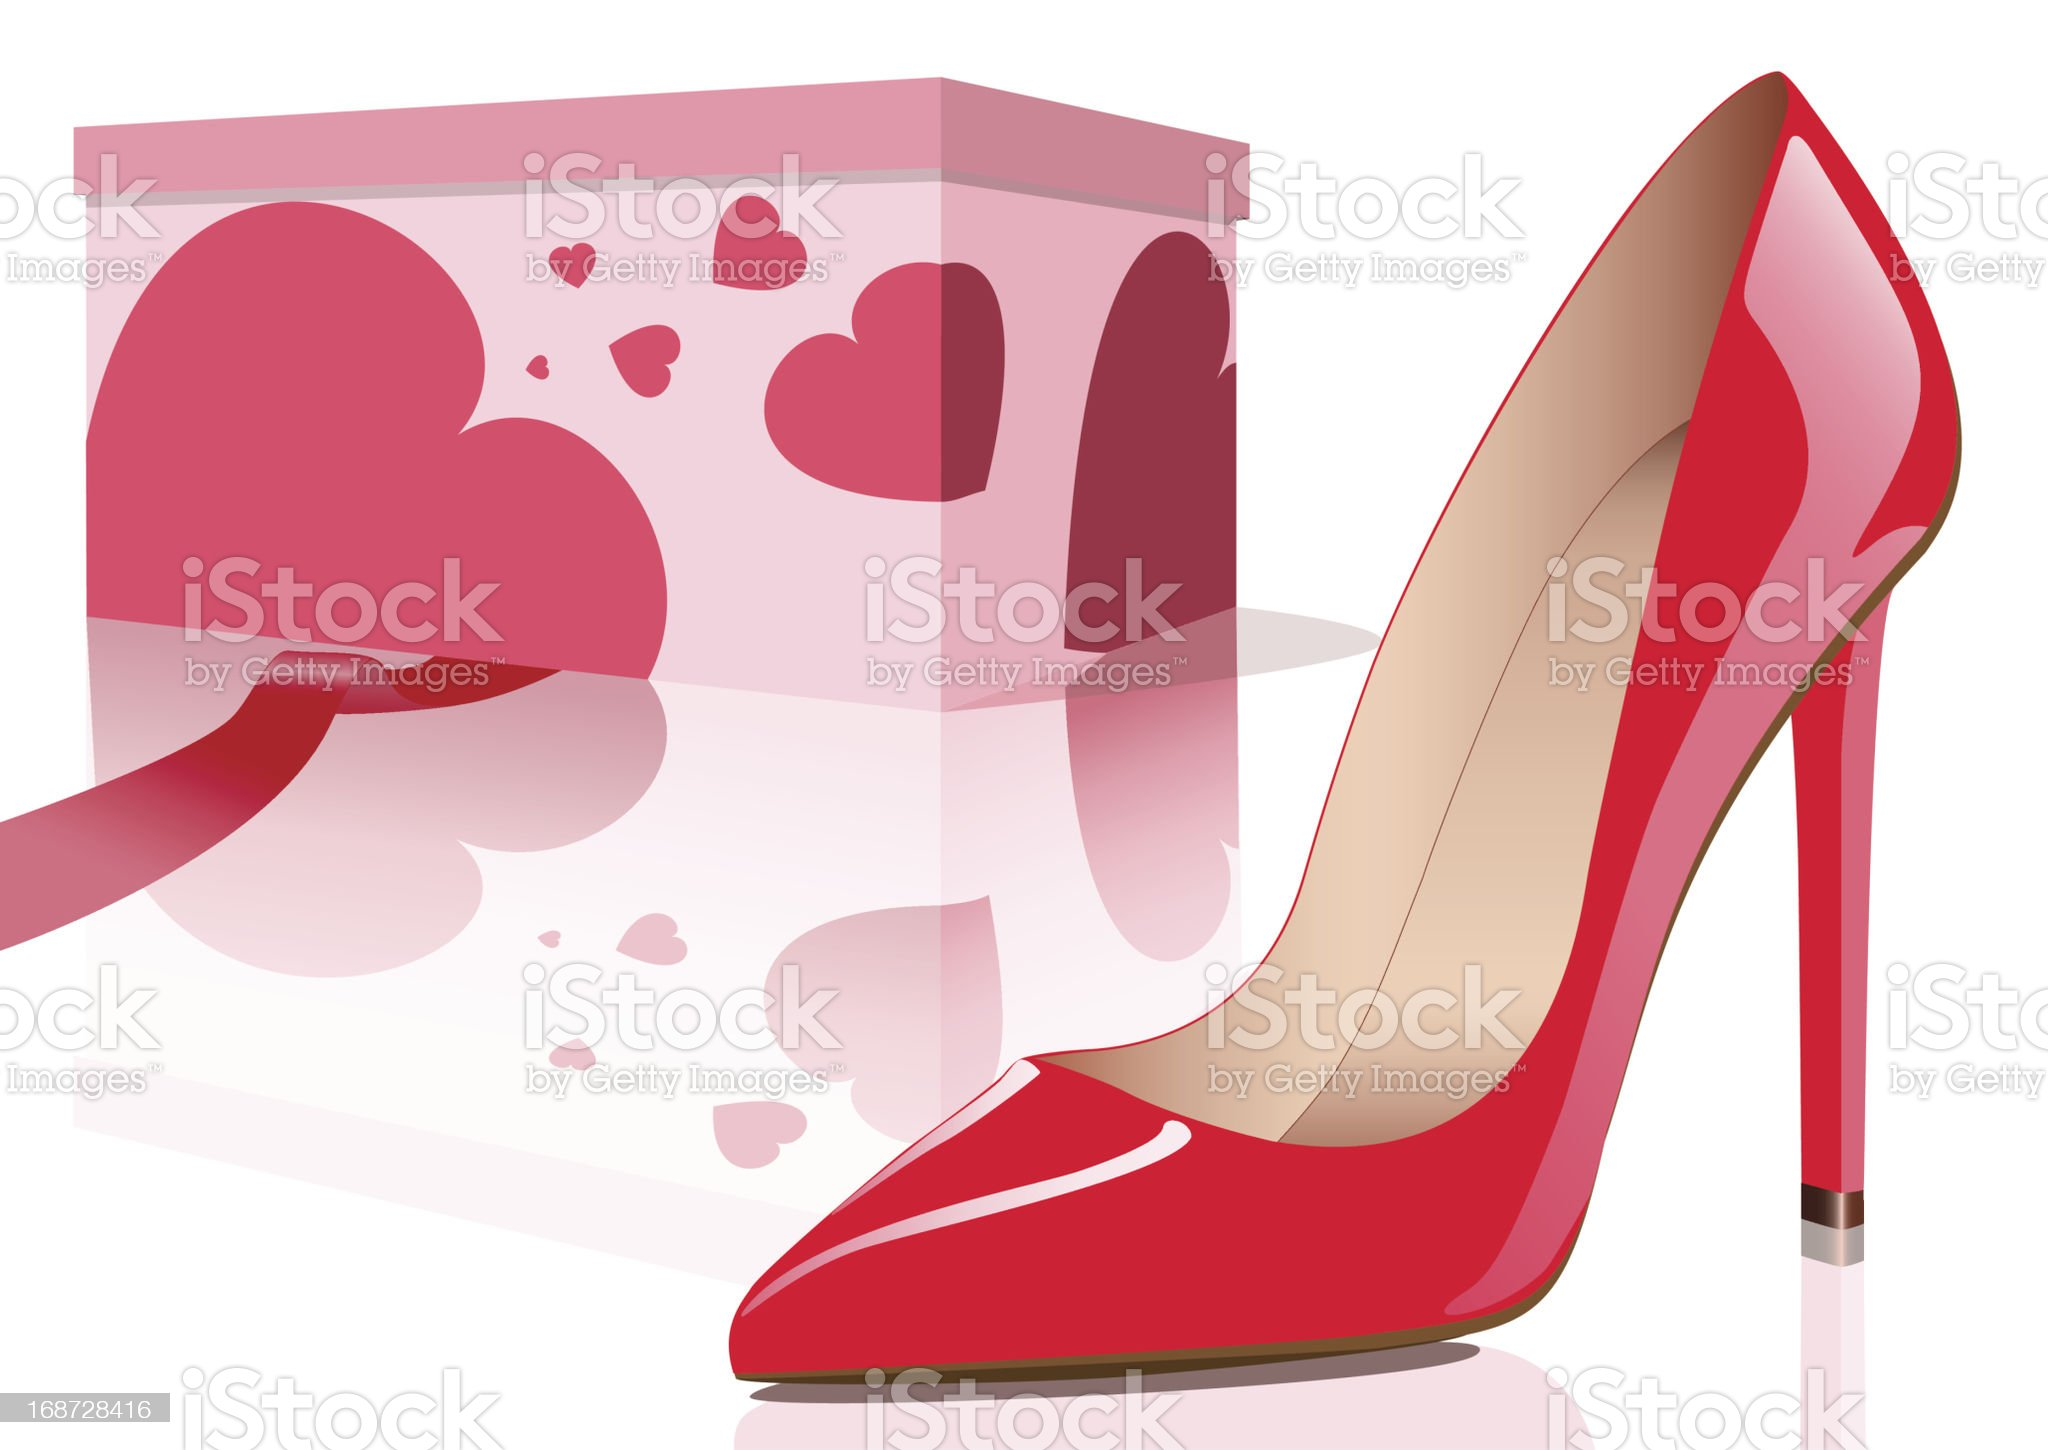 Red shoe royalty-free stock vector art